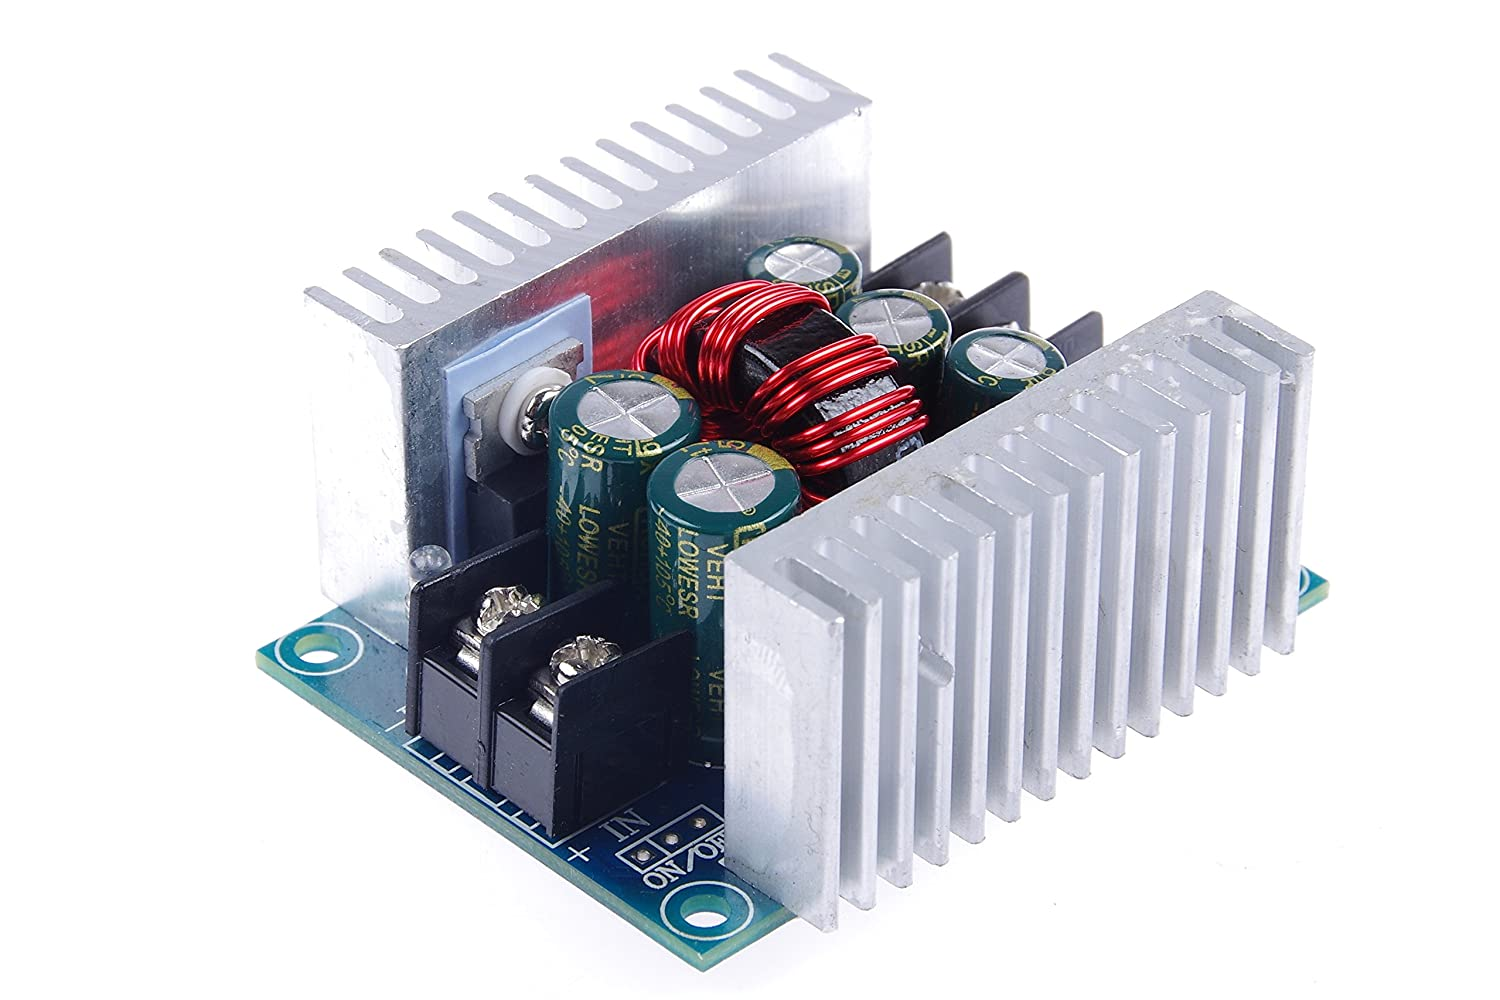 Knacro 300w Dc Buck Converter Power Module Output With Shortcircuit Protection Hardware Design Adjustable 20a Max 6 40v Step Down To 12 36v Constant Voltage Current